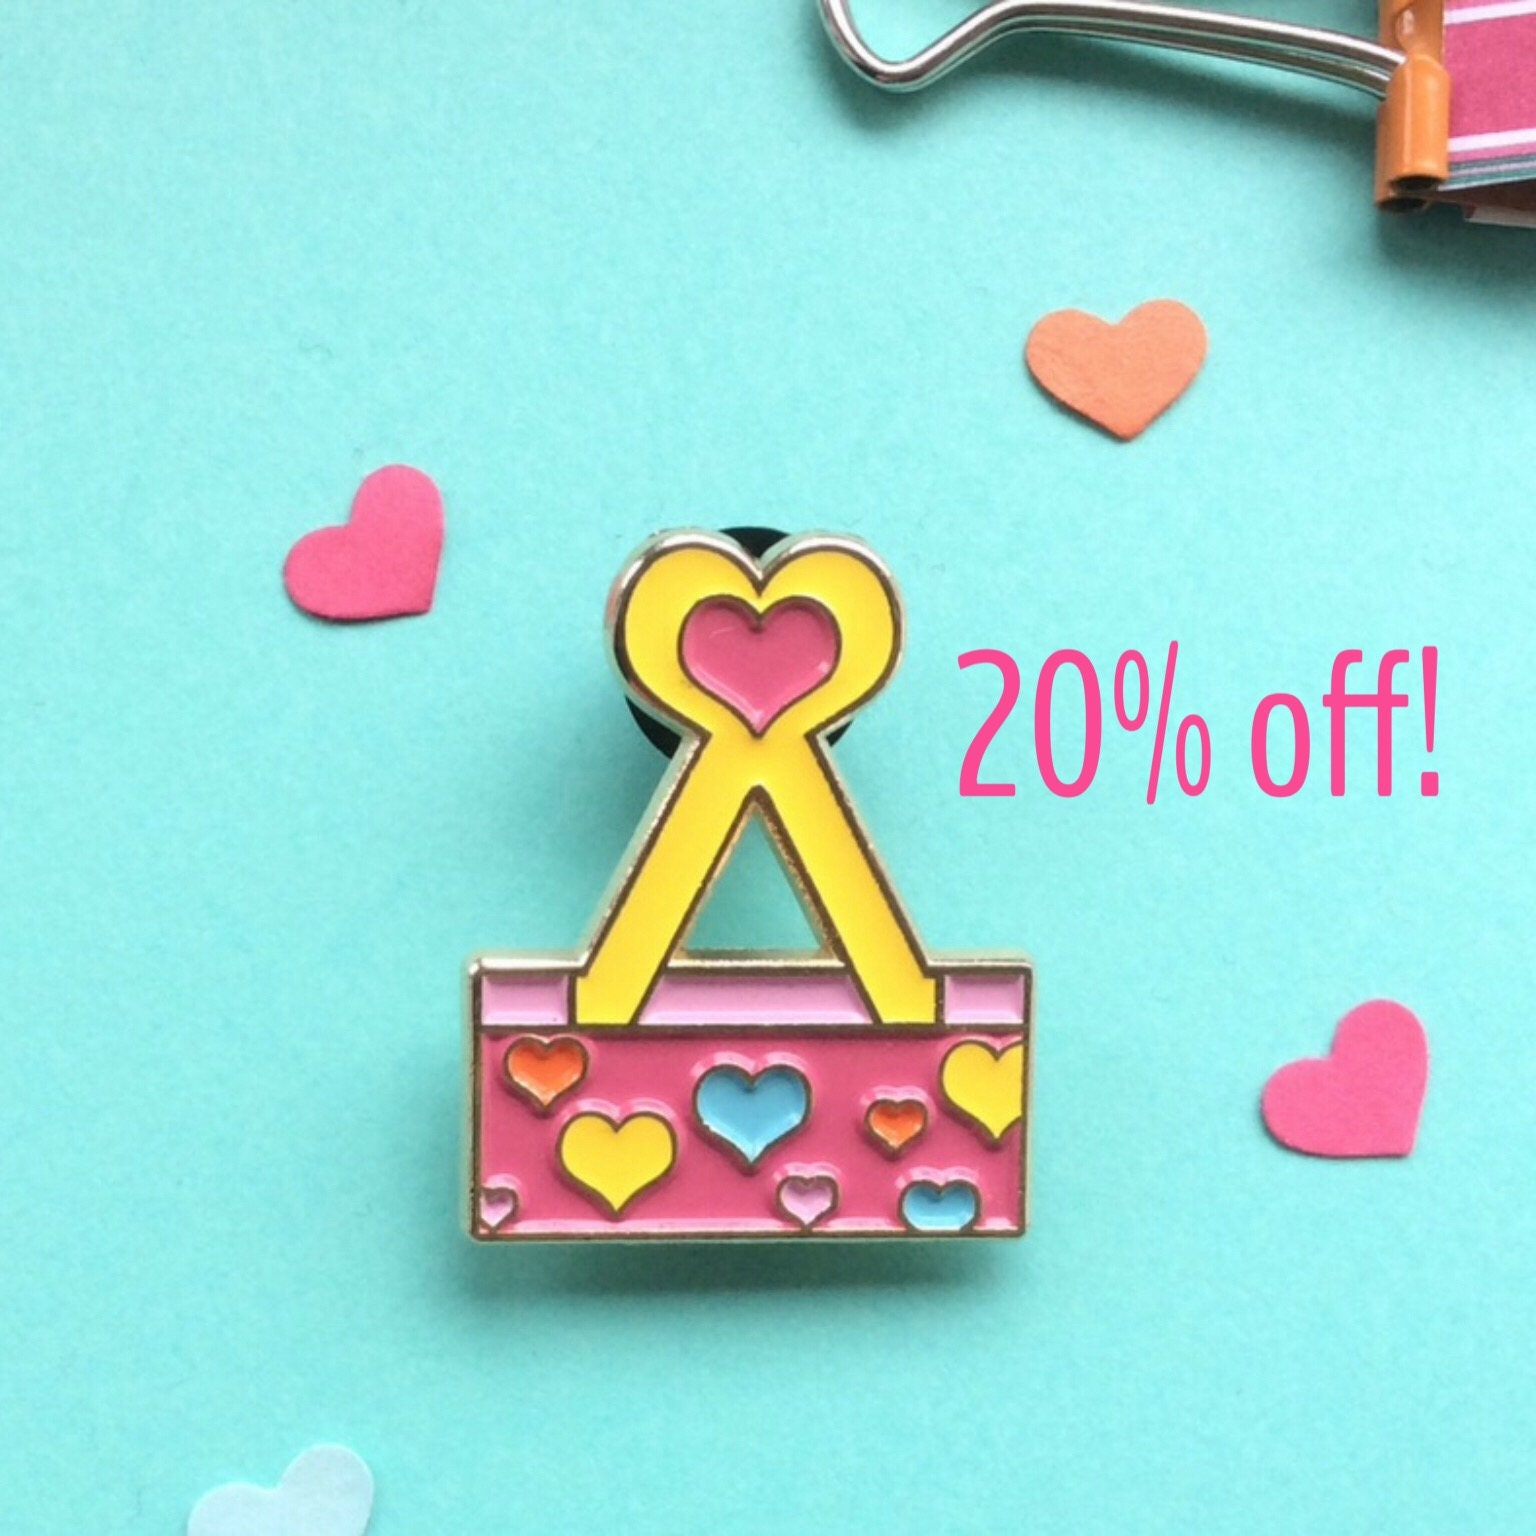 Binder Clip Soft Enamel Pin Cute Pink Lapel Pin With Hearts